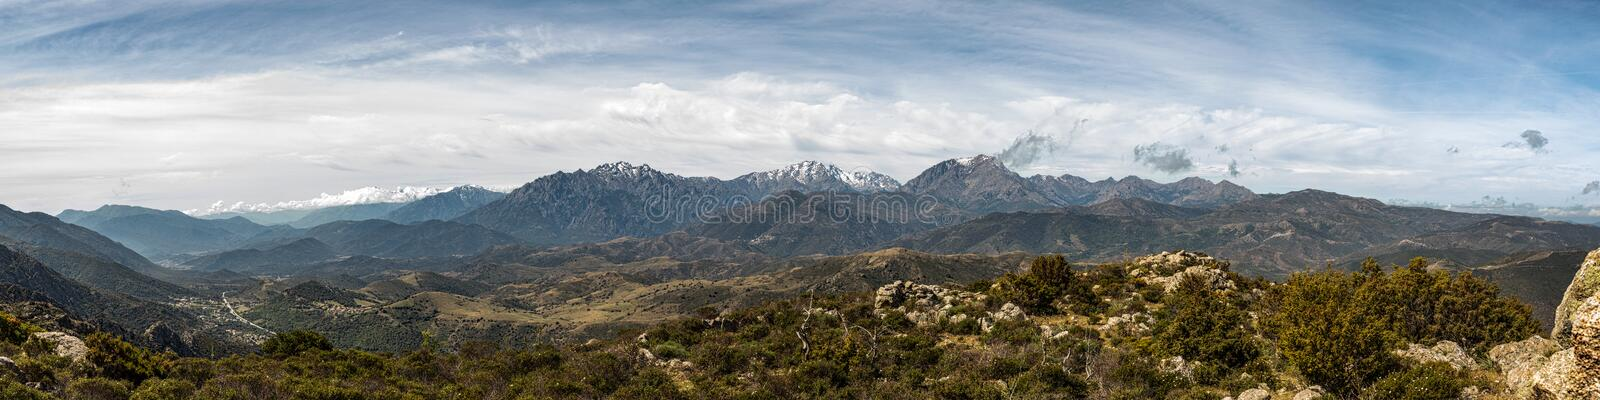 Panoramic view of snow capped mountains of northern Corsica royalty free stock photography